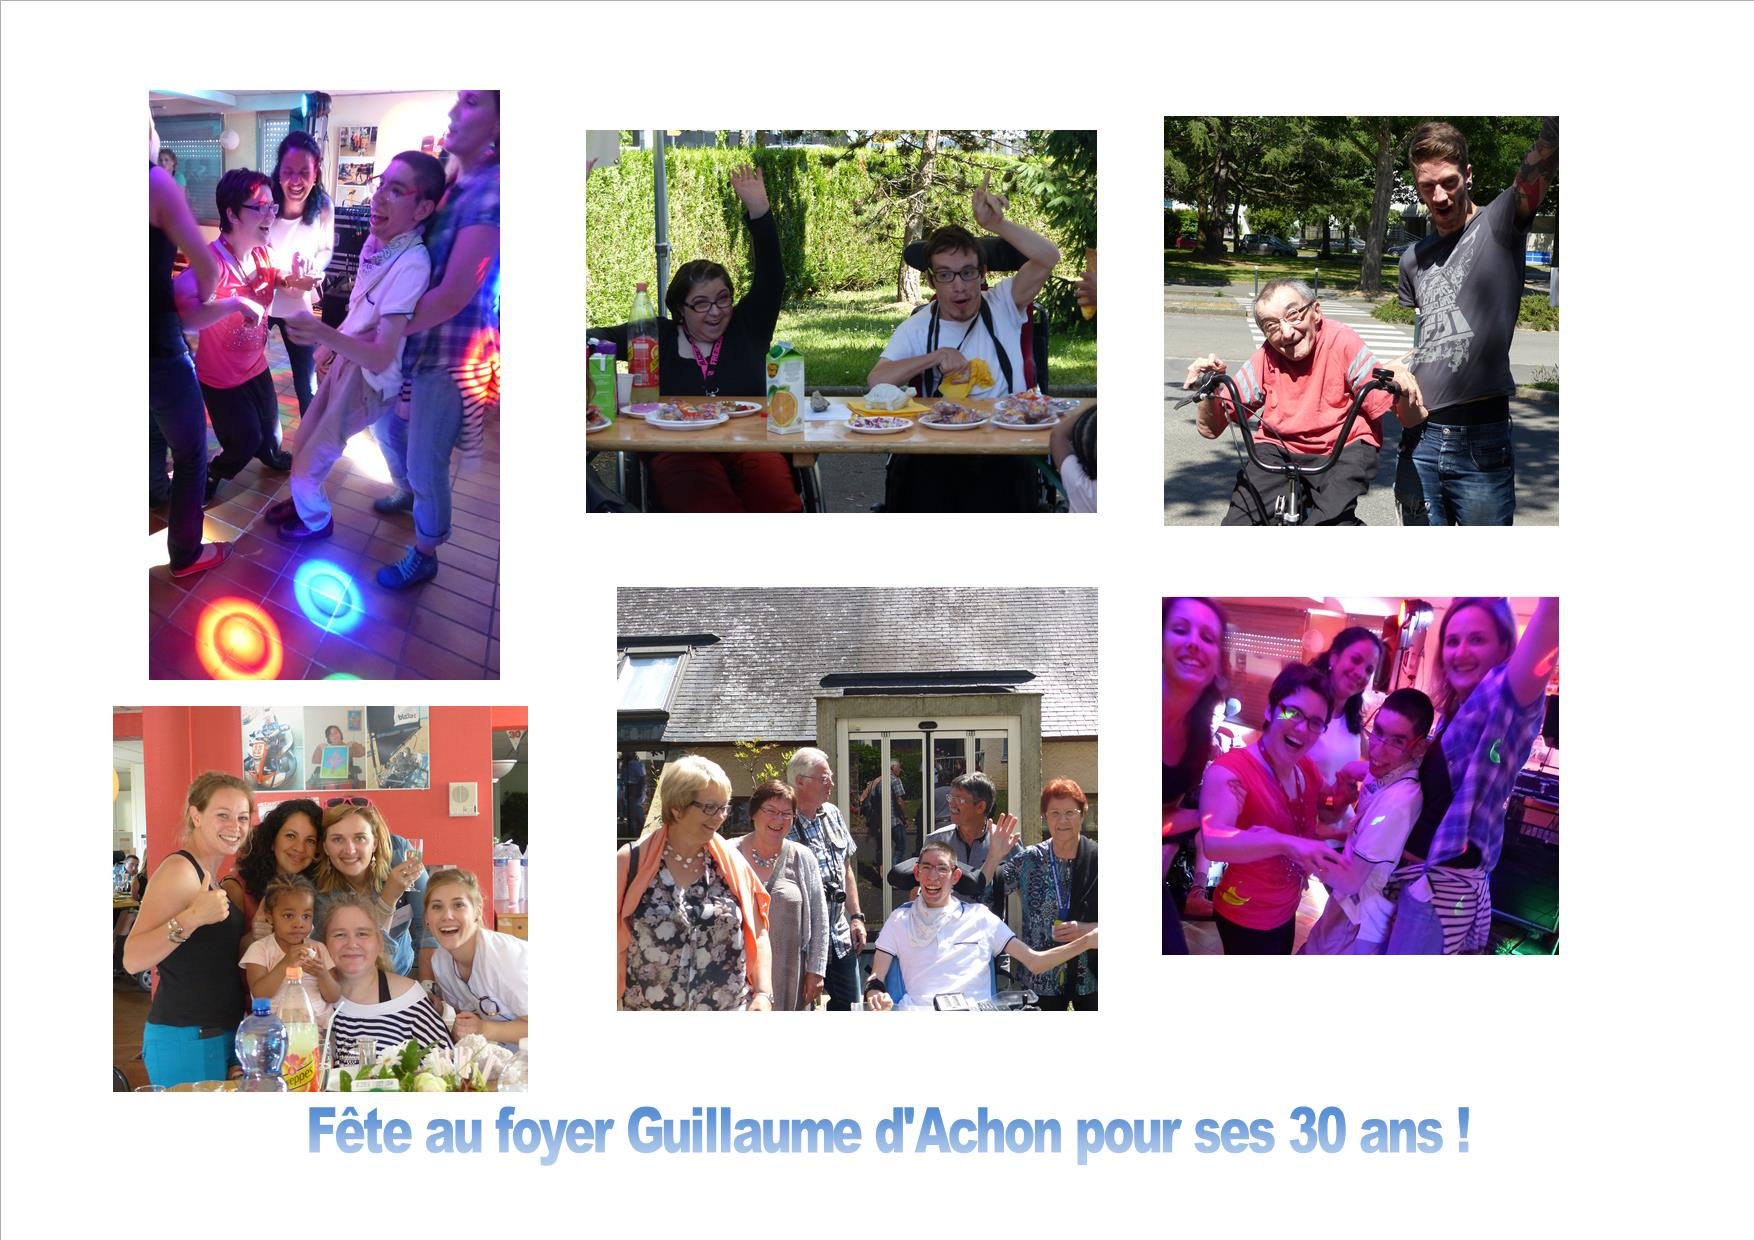 http://apfbretagne.blogs.apf.asso.fr/media/00/00/4171825566.jpg